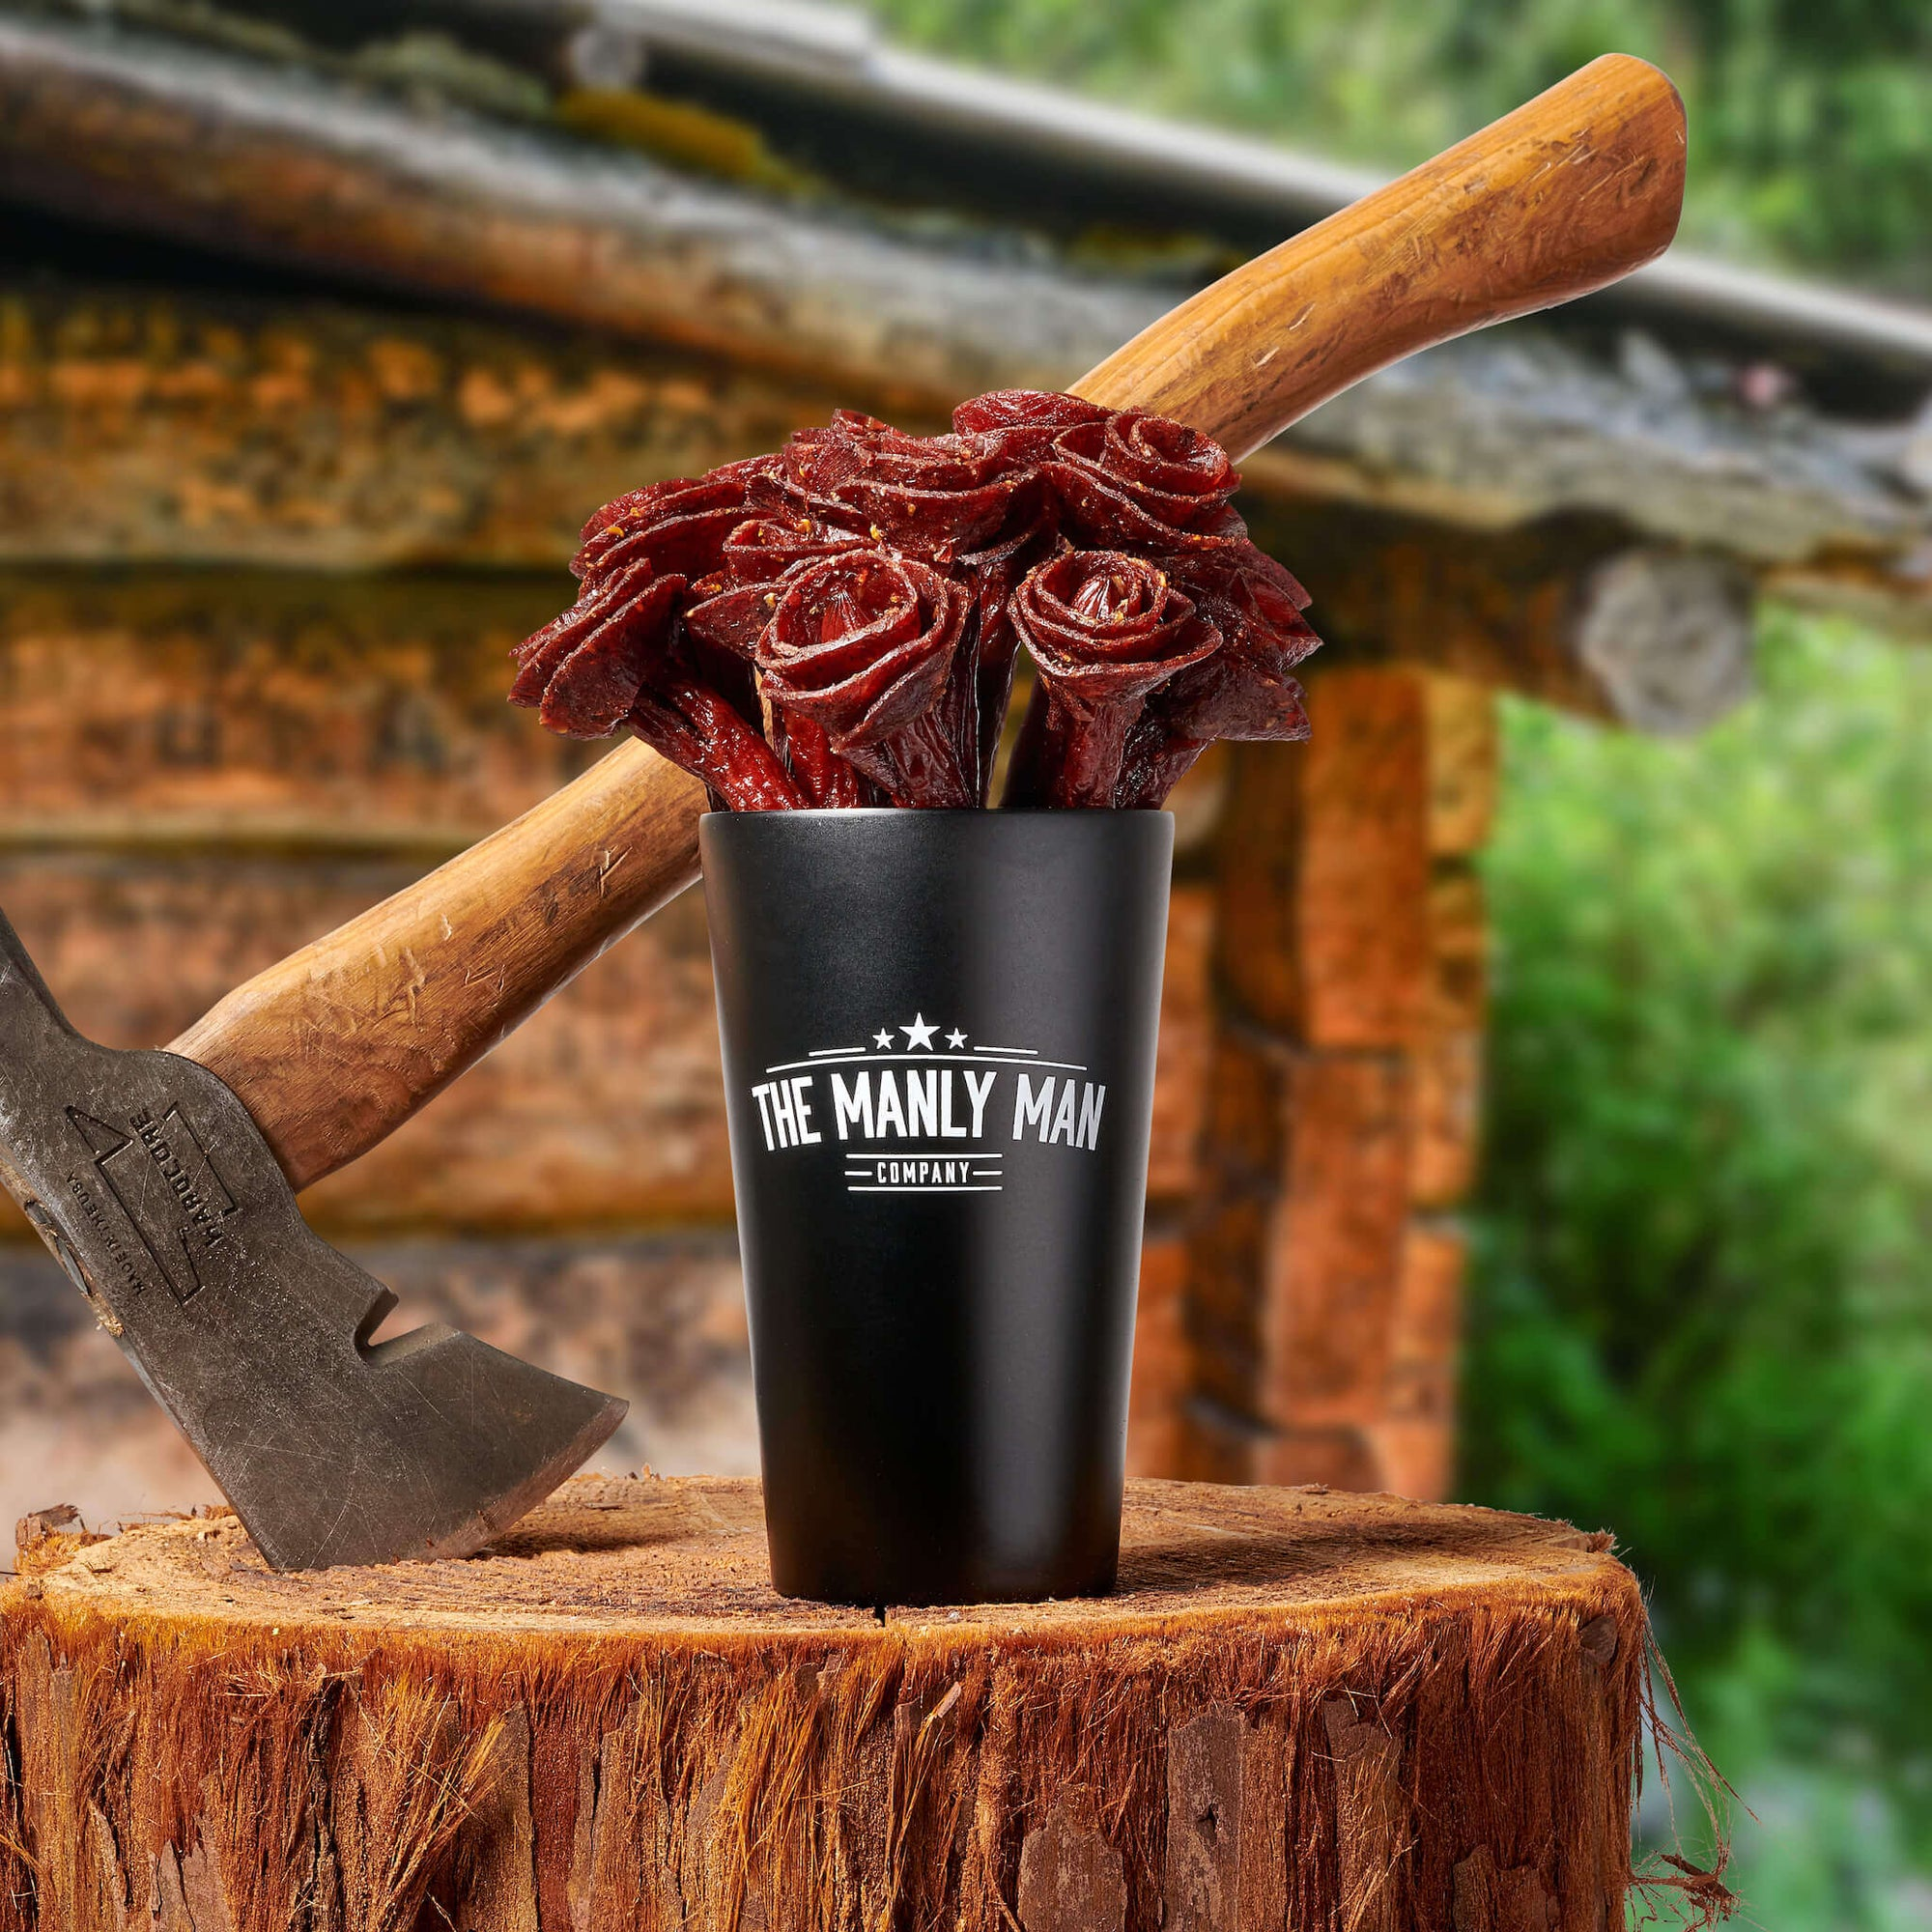 Handmade Manly Man beef jerky rose gift bouquet sitting on log with a hatchet